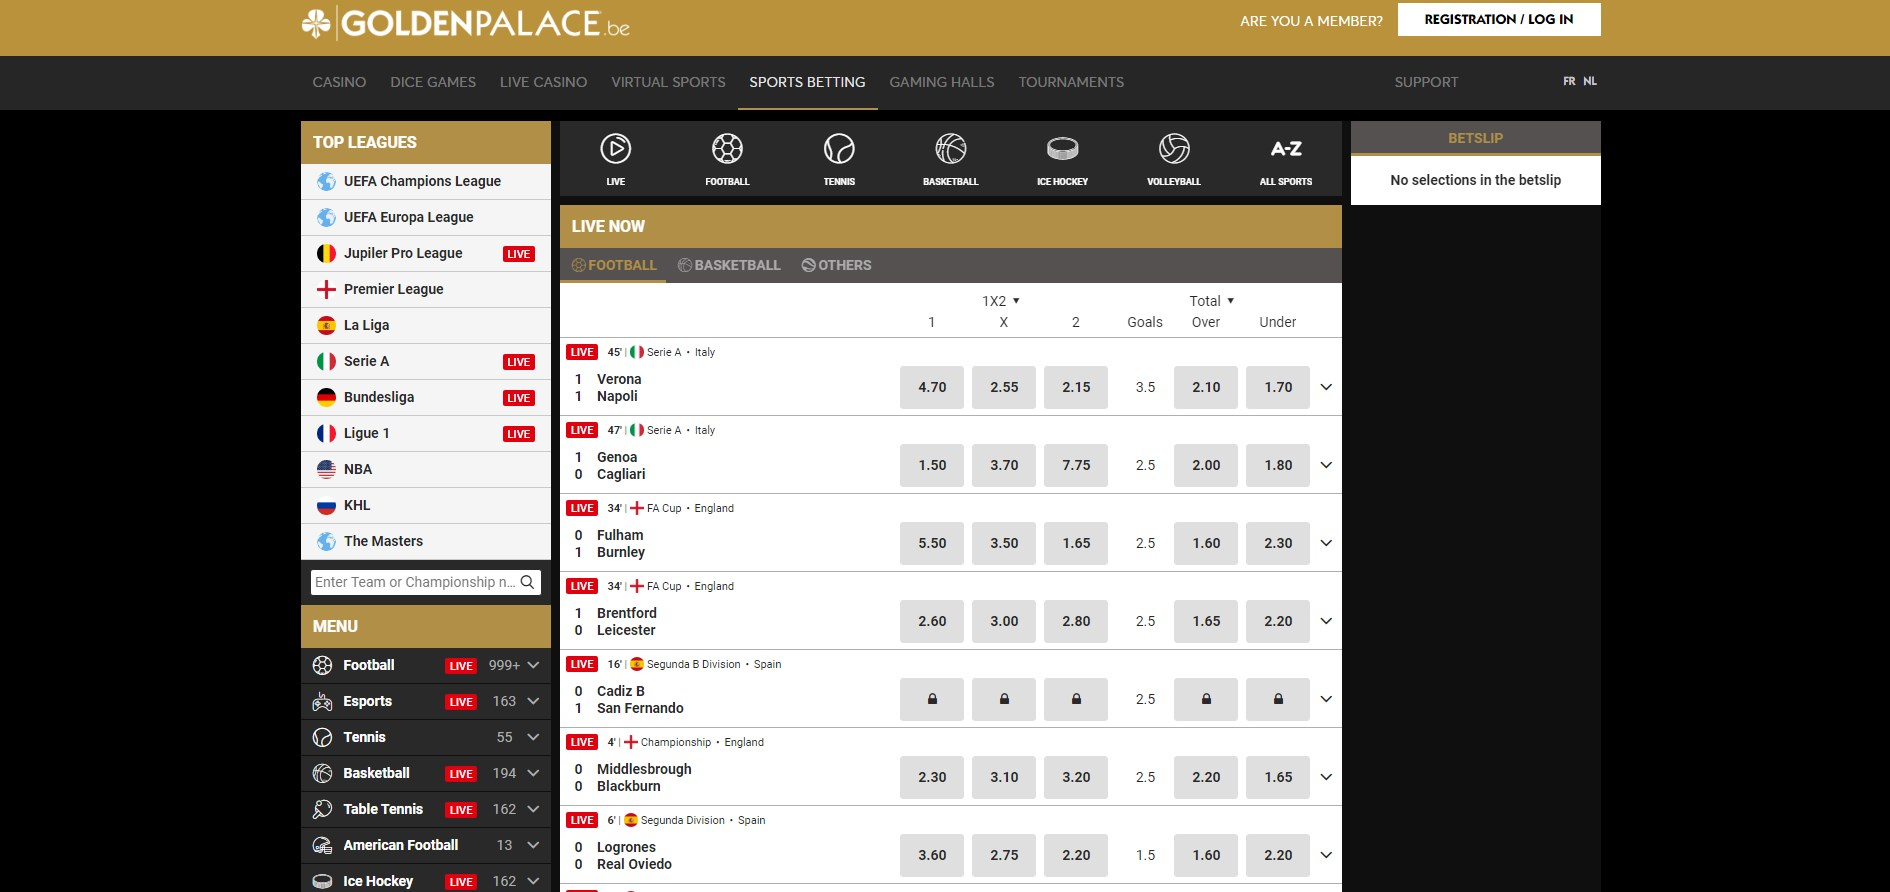 Golden Palace (BE) Casino Betting